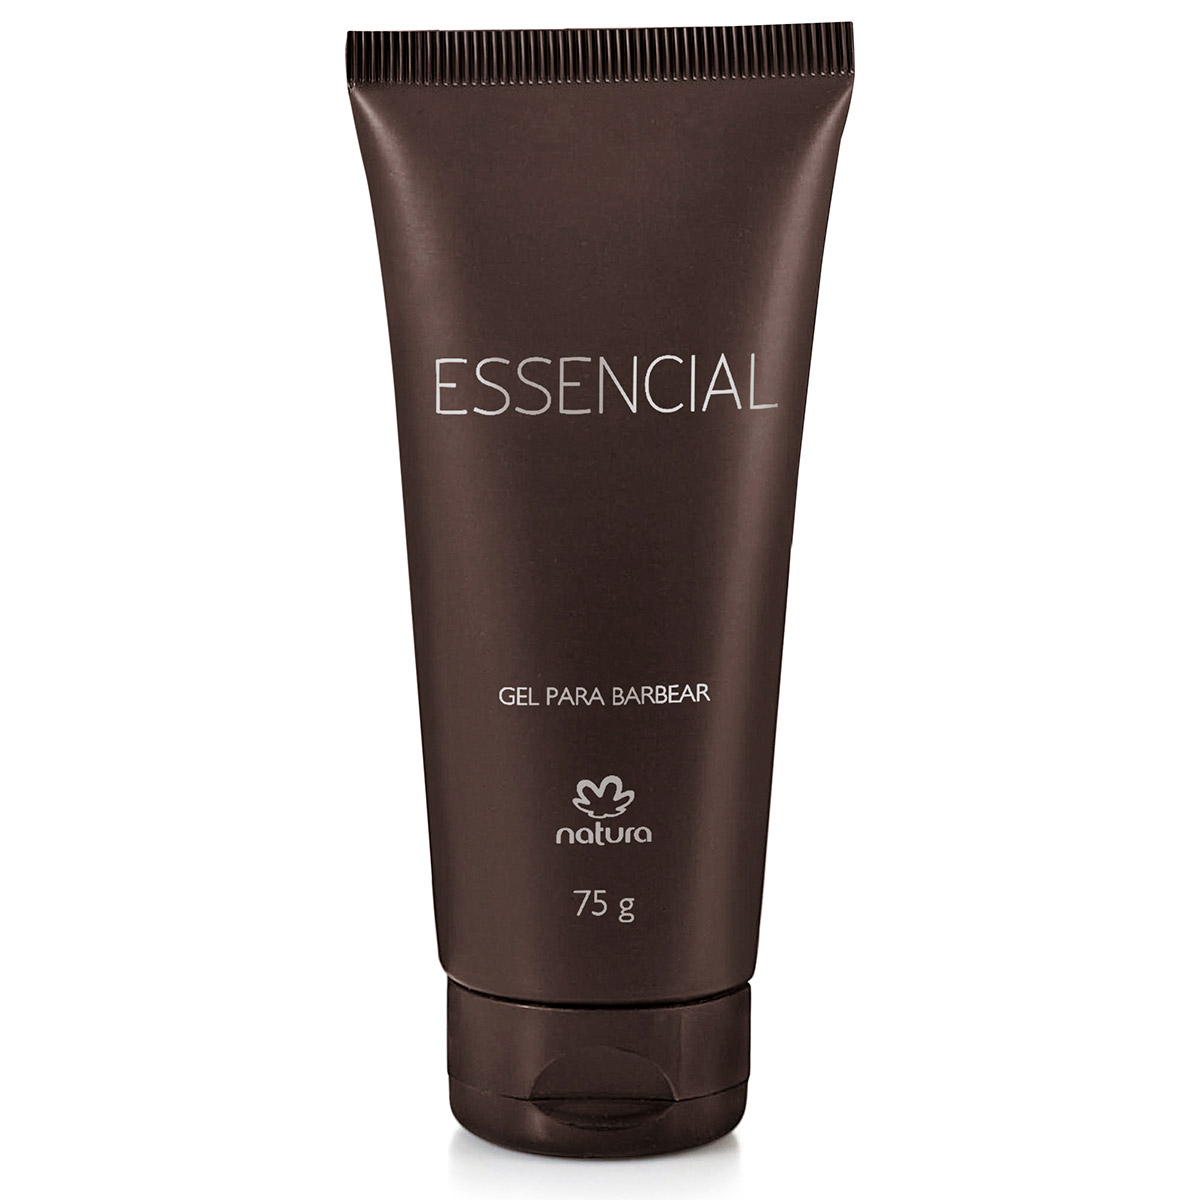 Gel Para Barbear Essencial - 75g - 53607